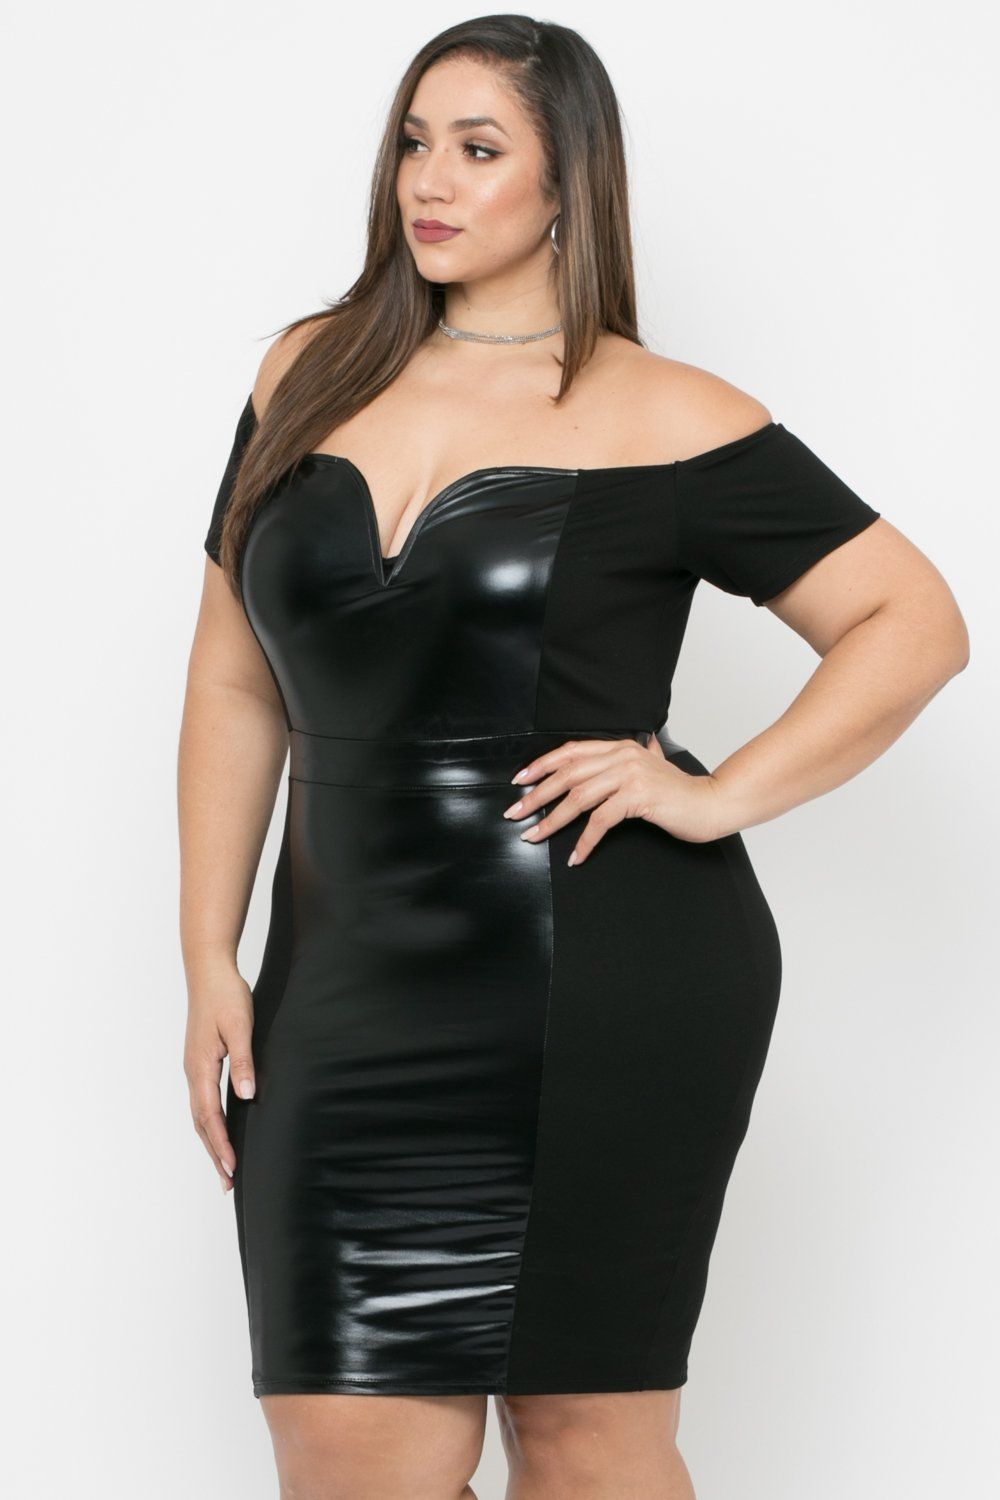 Plus Size Naomi Faux Patent Leather Bodycon Dress - Black | Erica ...